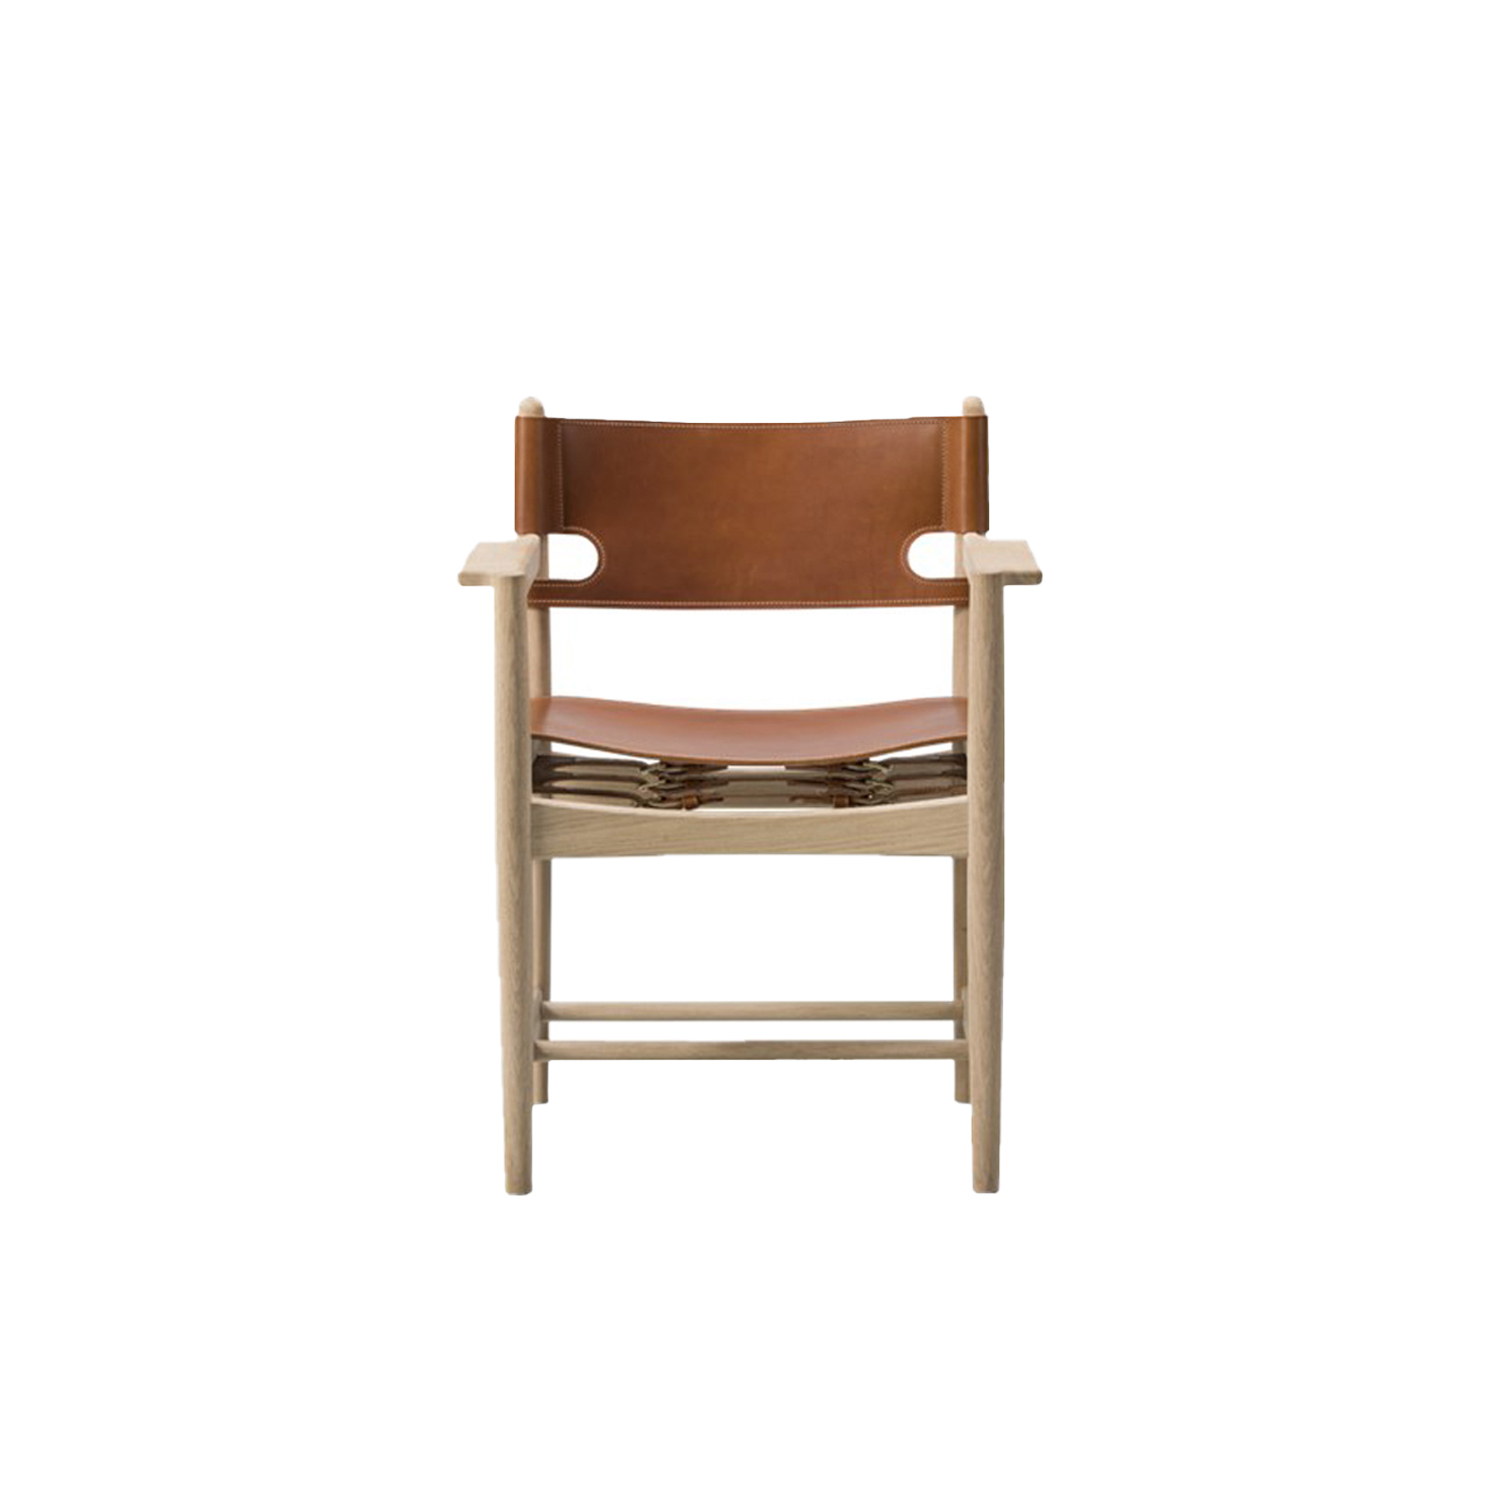 The Spanish Dining Armchair - The Spanish Dining Chair is a testament to the application of honest materials. Crafted from the finest selection of oak and flawless saddle leather, the chair is available with or without armrests, and with multiple finishes from light to darker shades, depending on the atmosphere you want to create.   Matter of Stuff